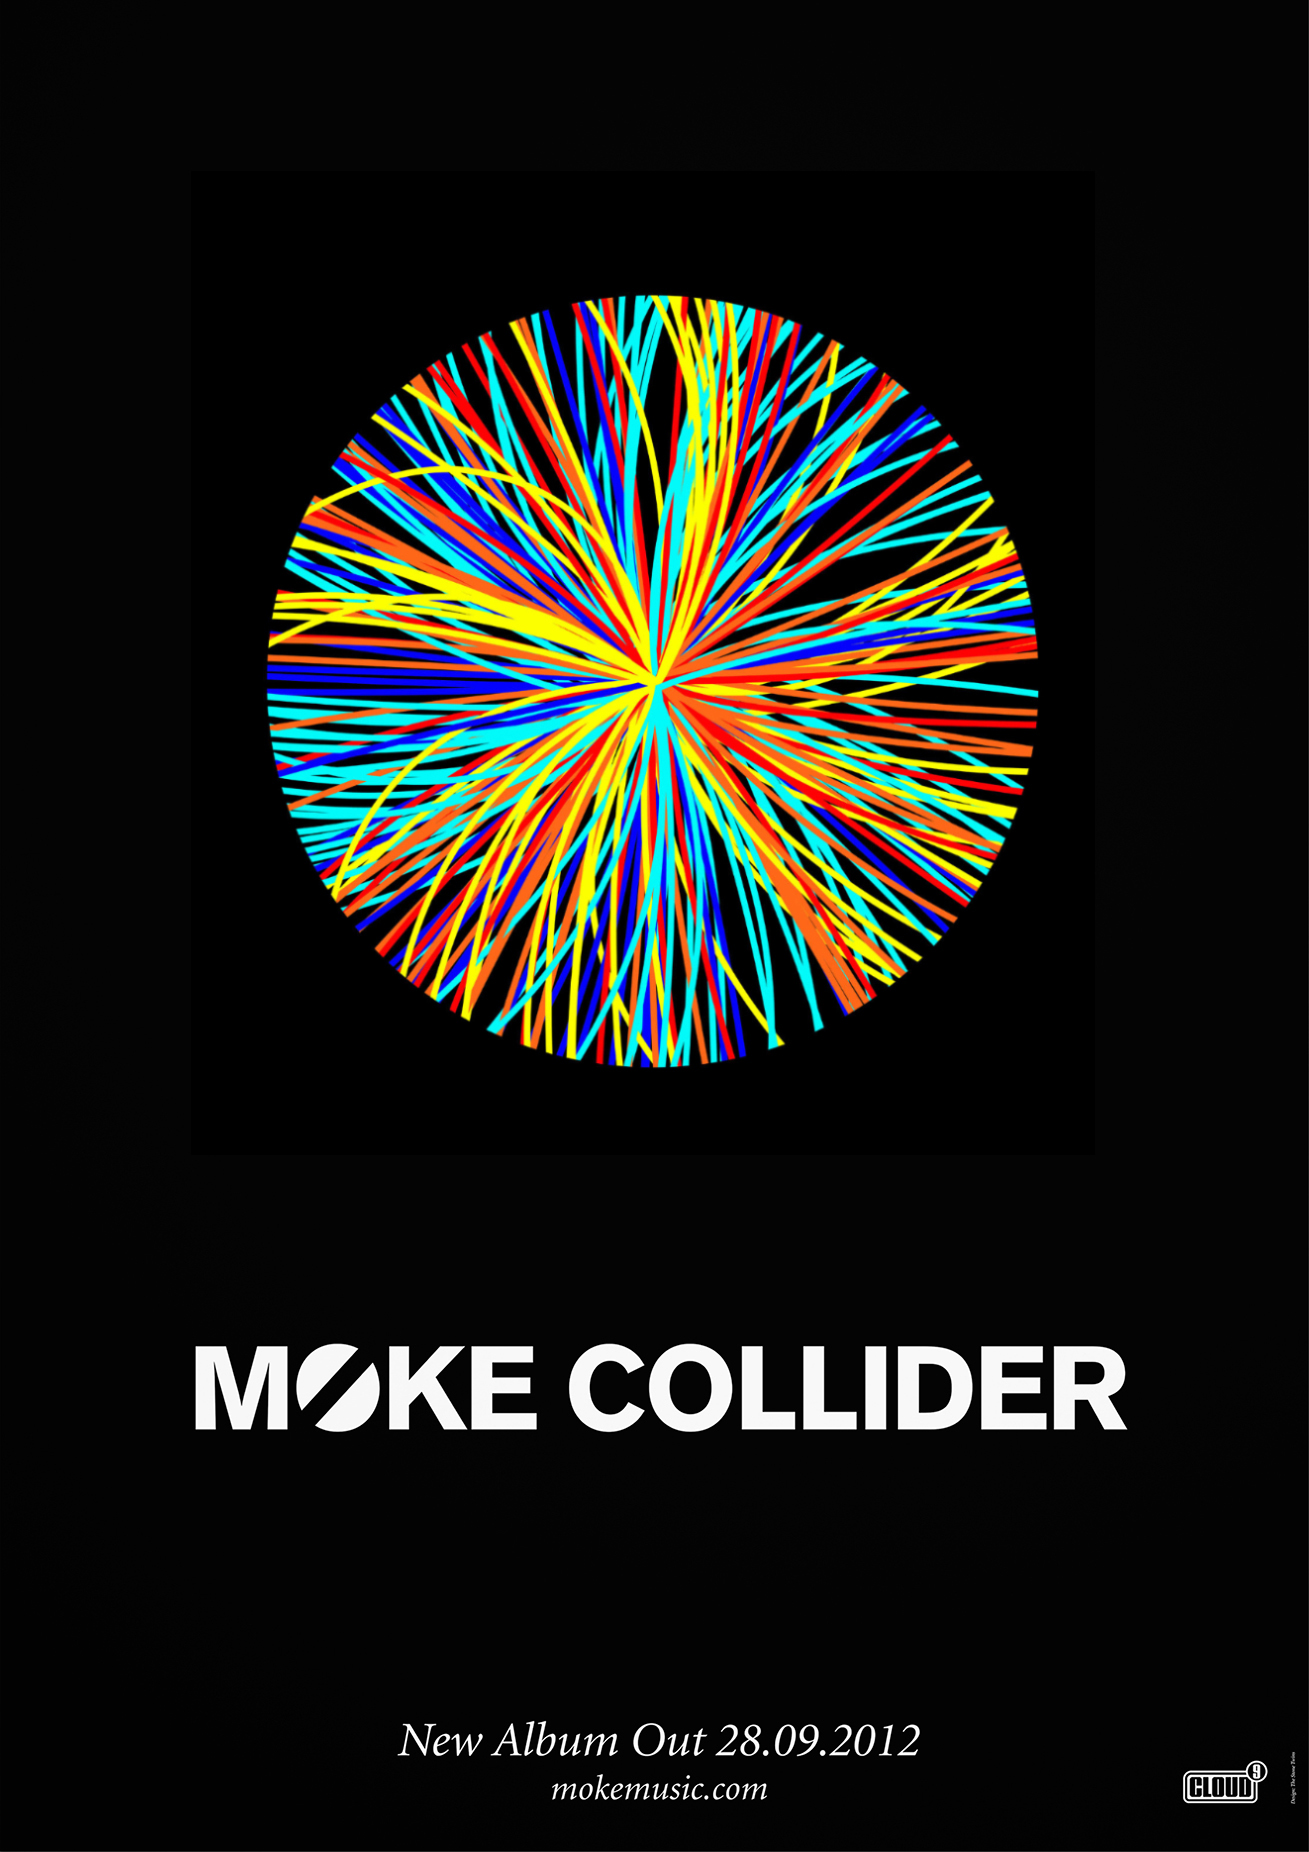 Cover image: Moke 'Collider' (2012)